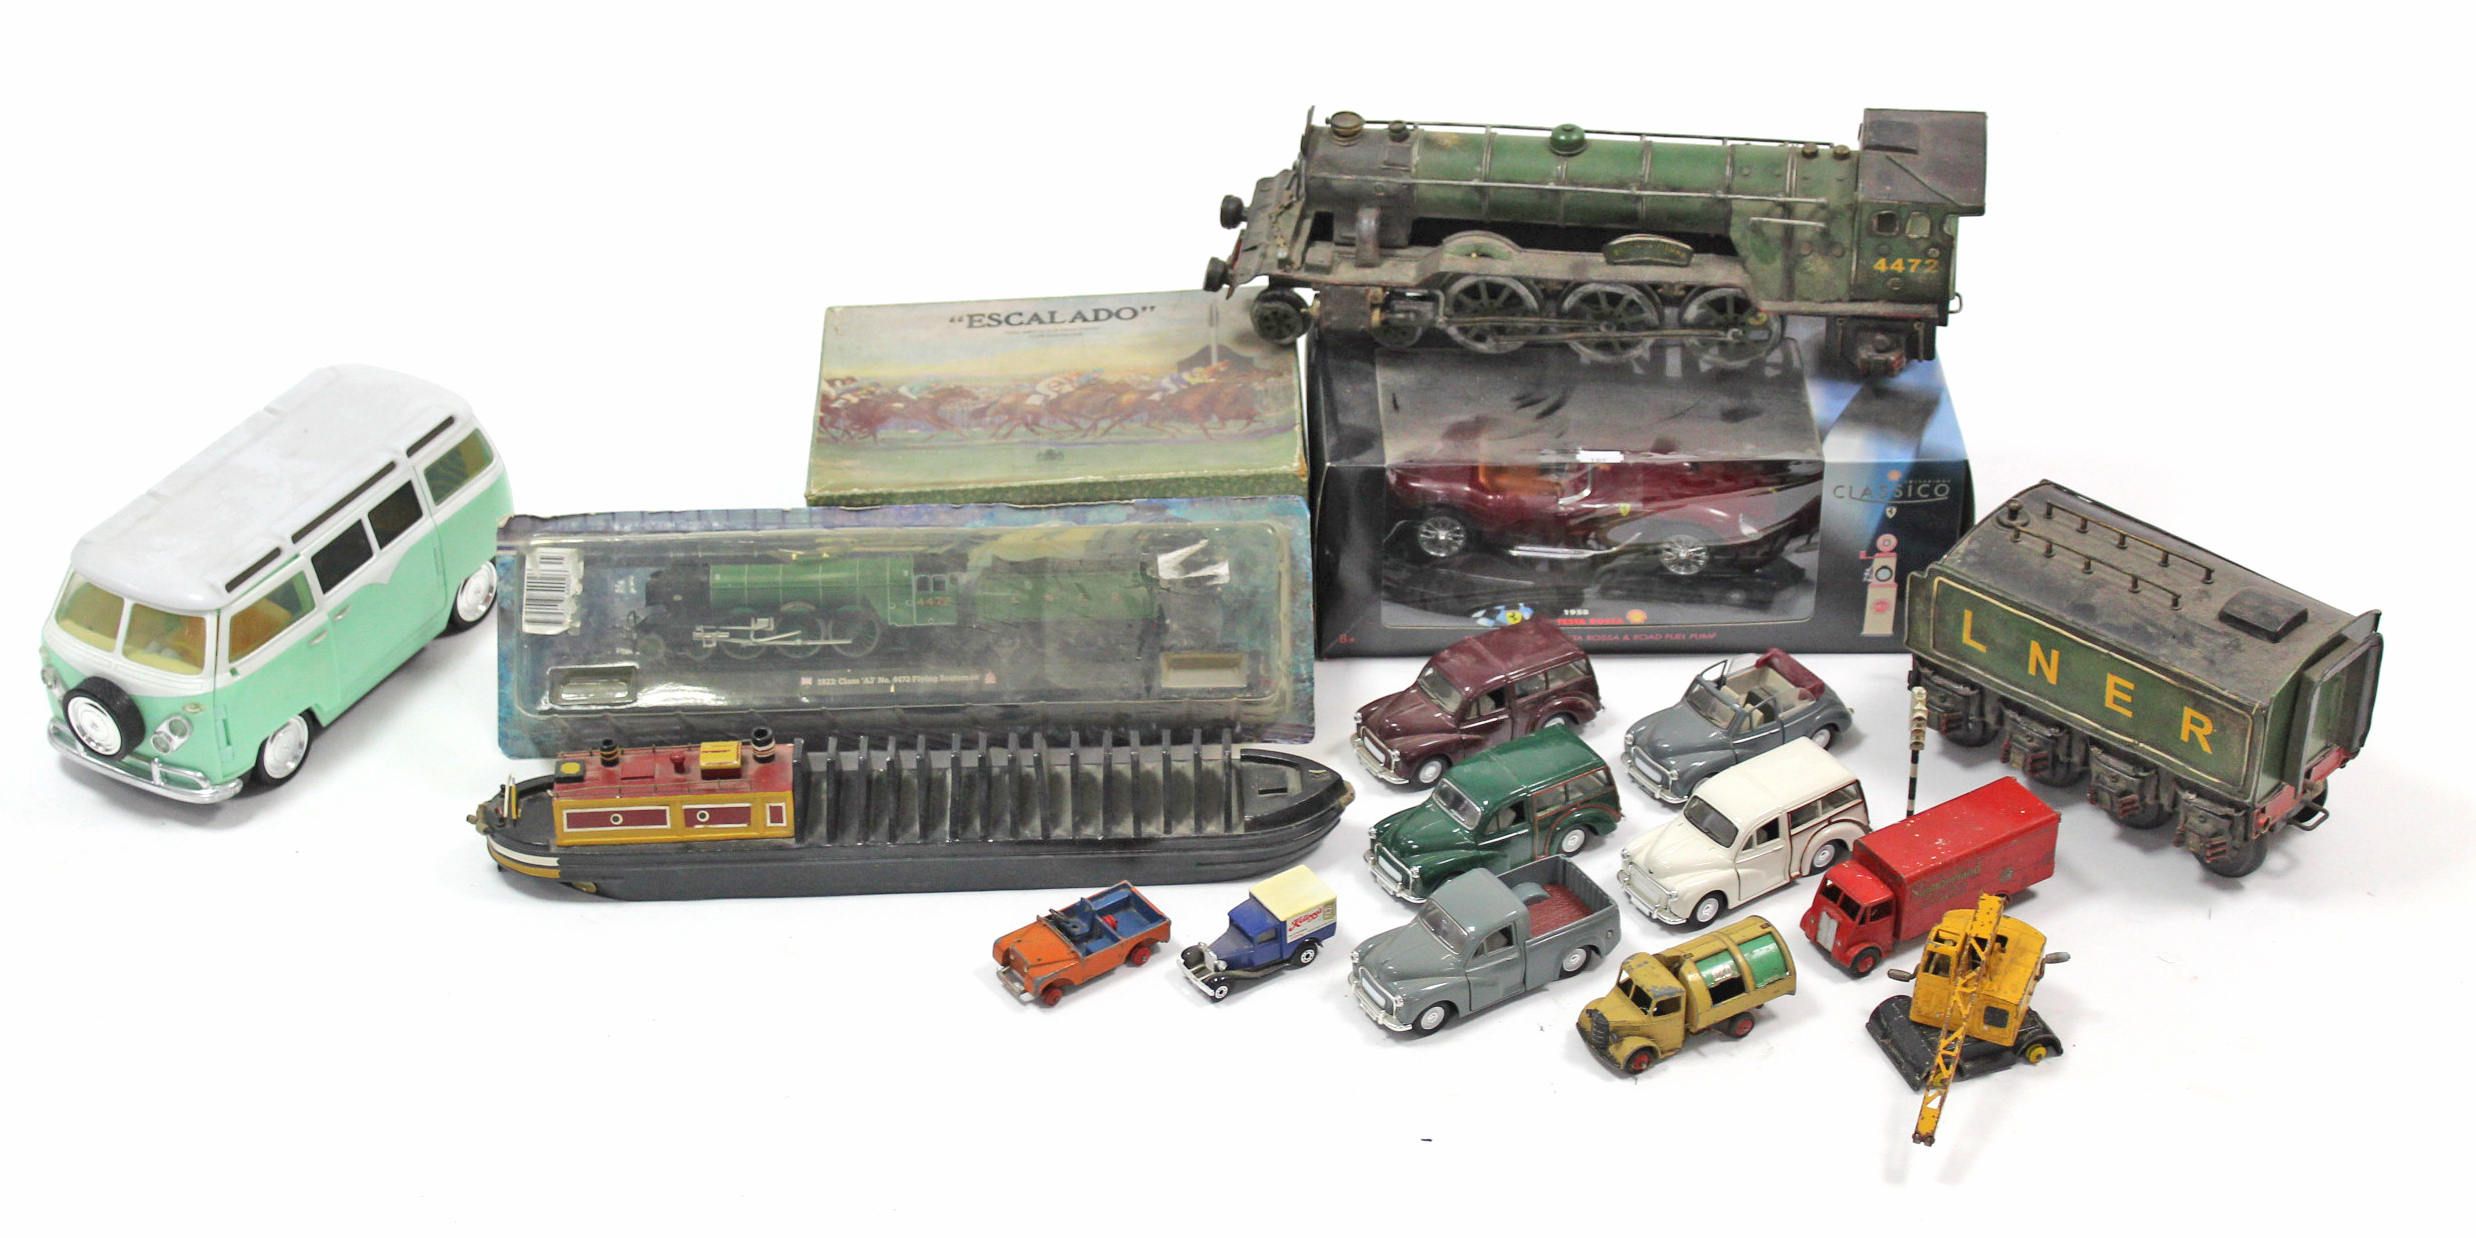 """Lot 109 - A Chad Valley """"Escalado"""" horse-racing game (incomplete), boxed; & various toy model vehicles."""